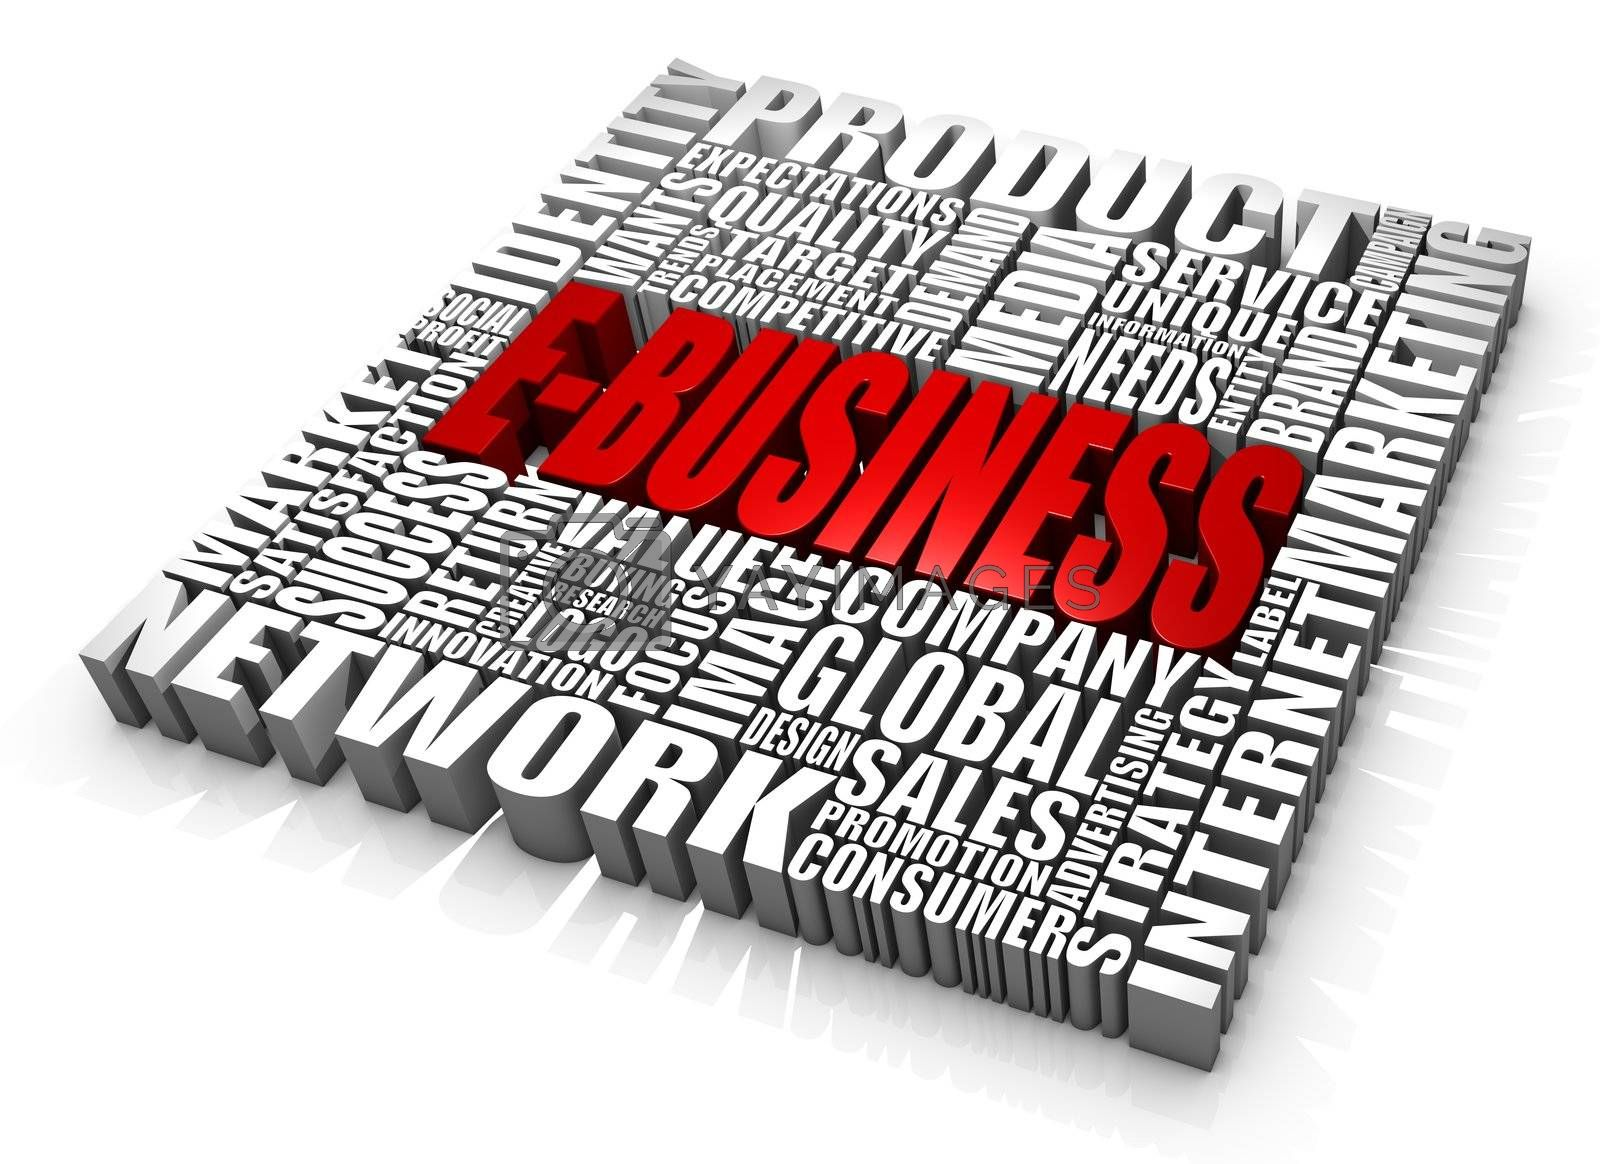 Group of e-business related words. Part of a series of business concepts.